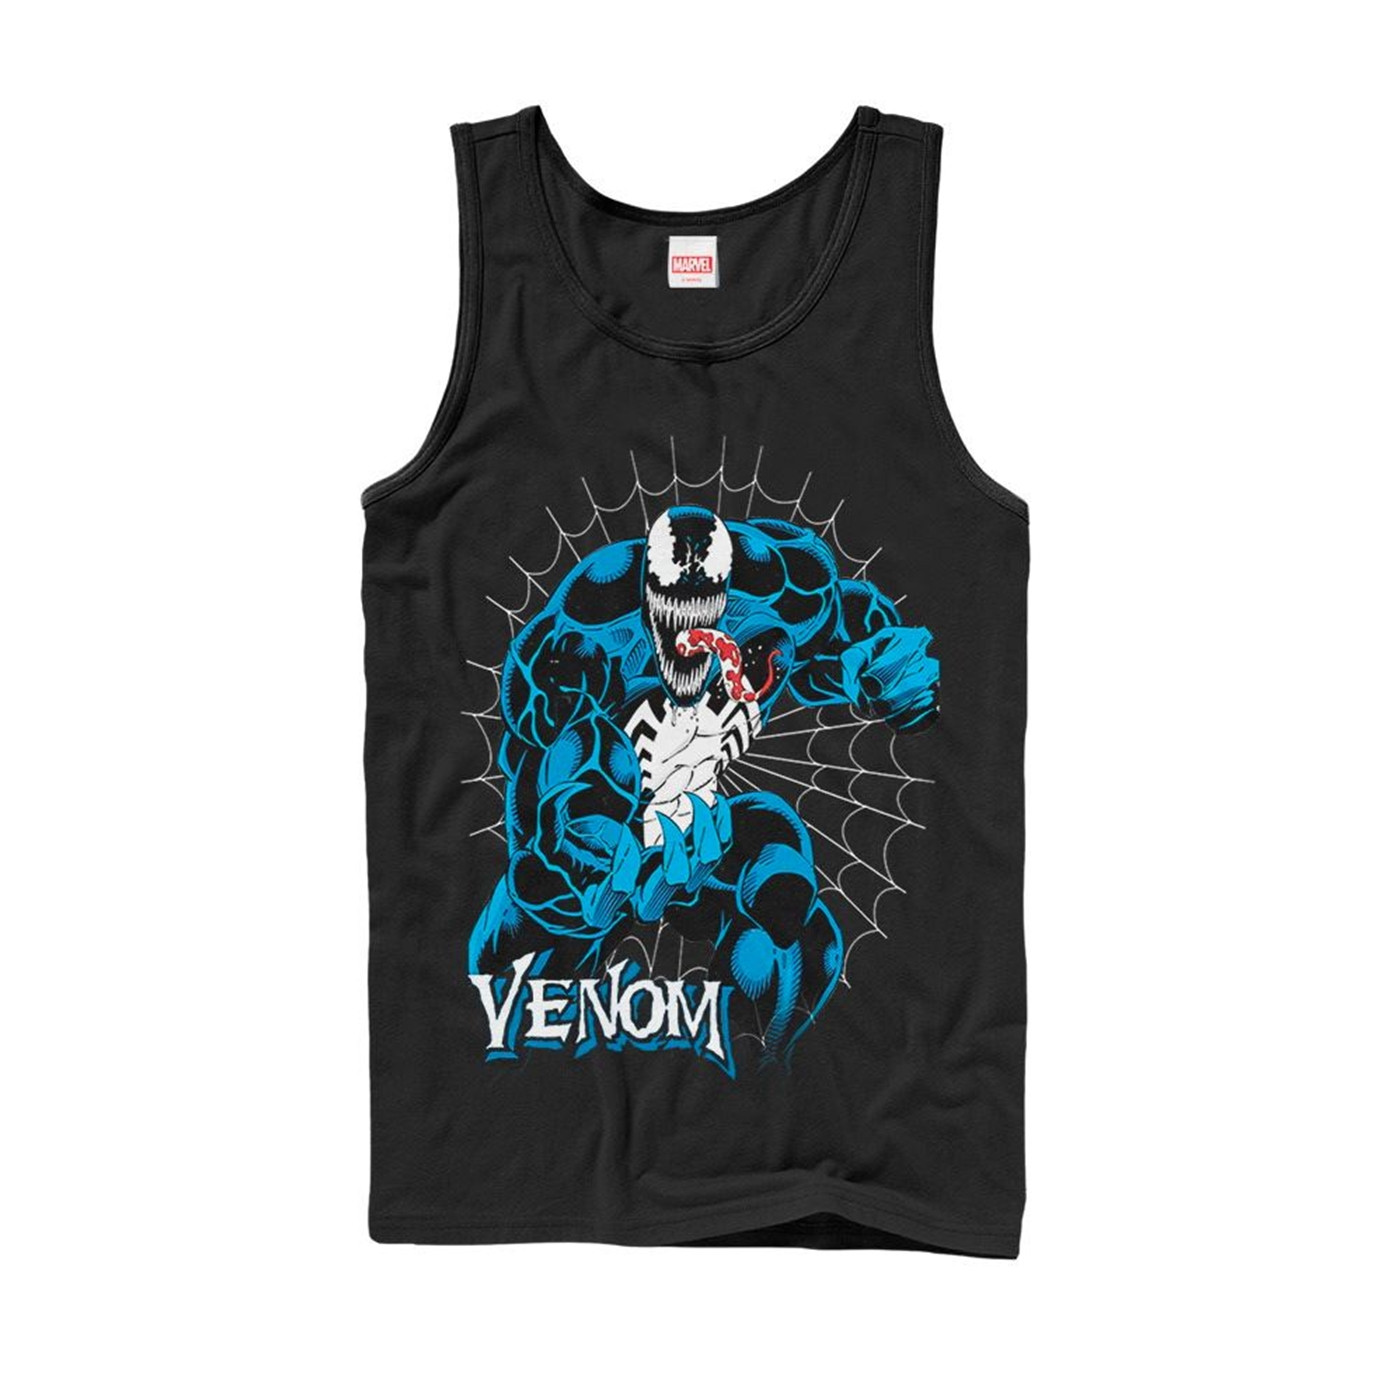 Marvel Venom Retro Web Tank Top